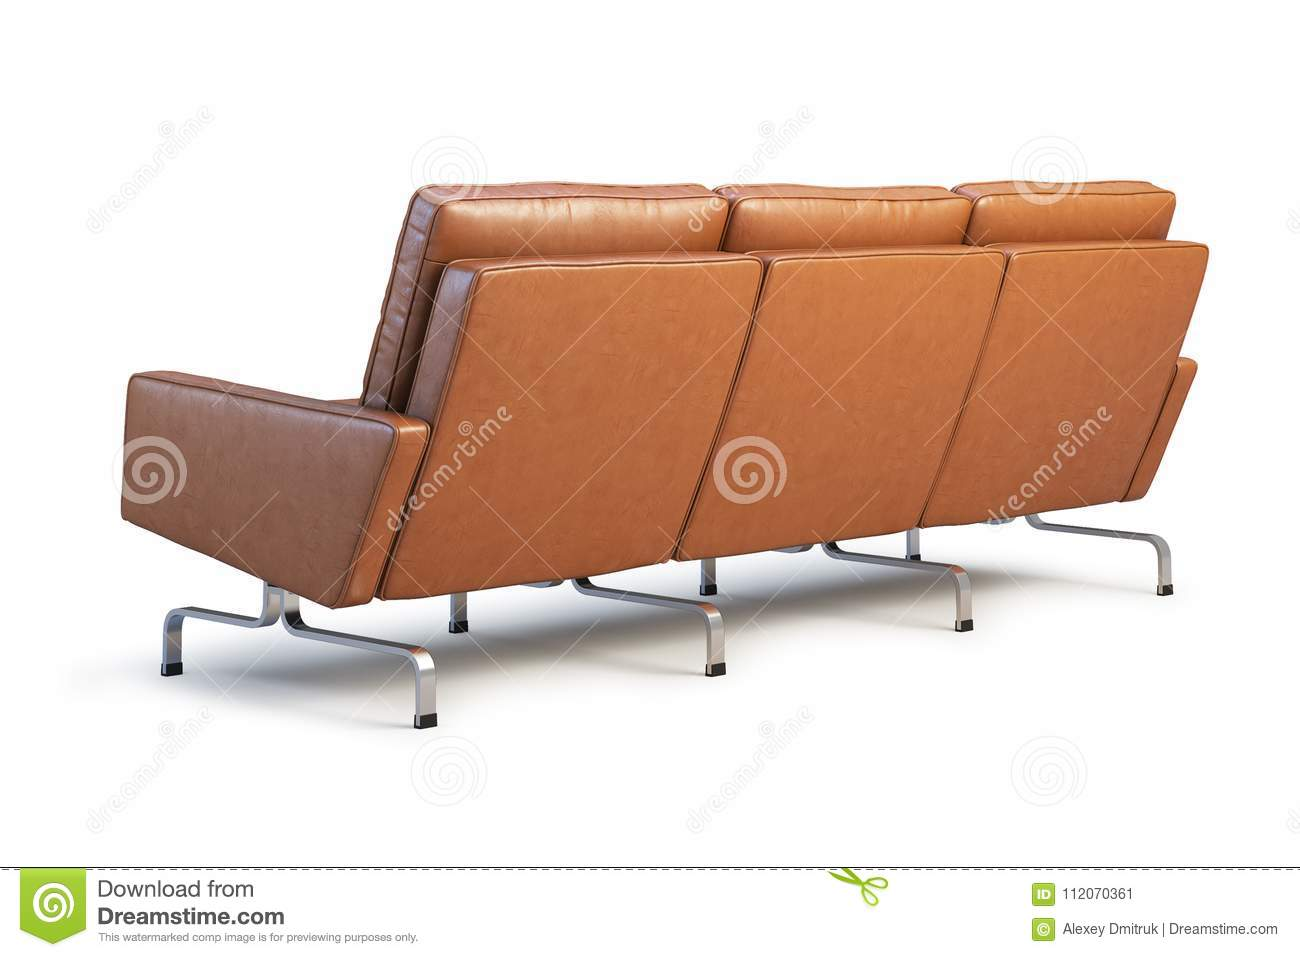 modern brown leather sofa ikea corner three seat 3d render stock illustration with chrome base for office realistic folds model